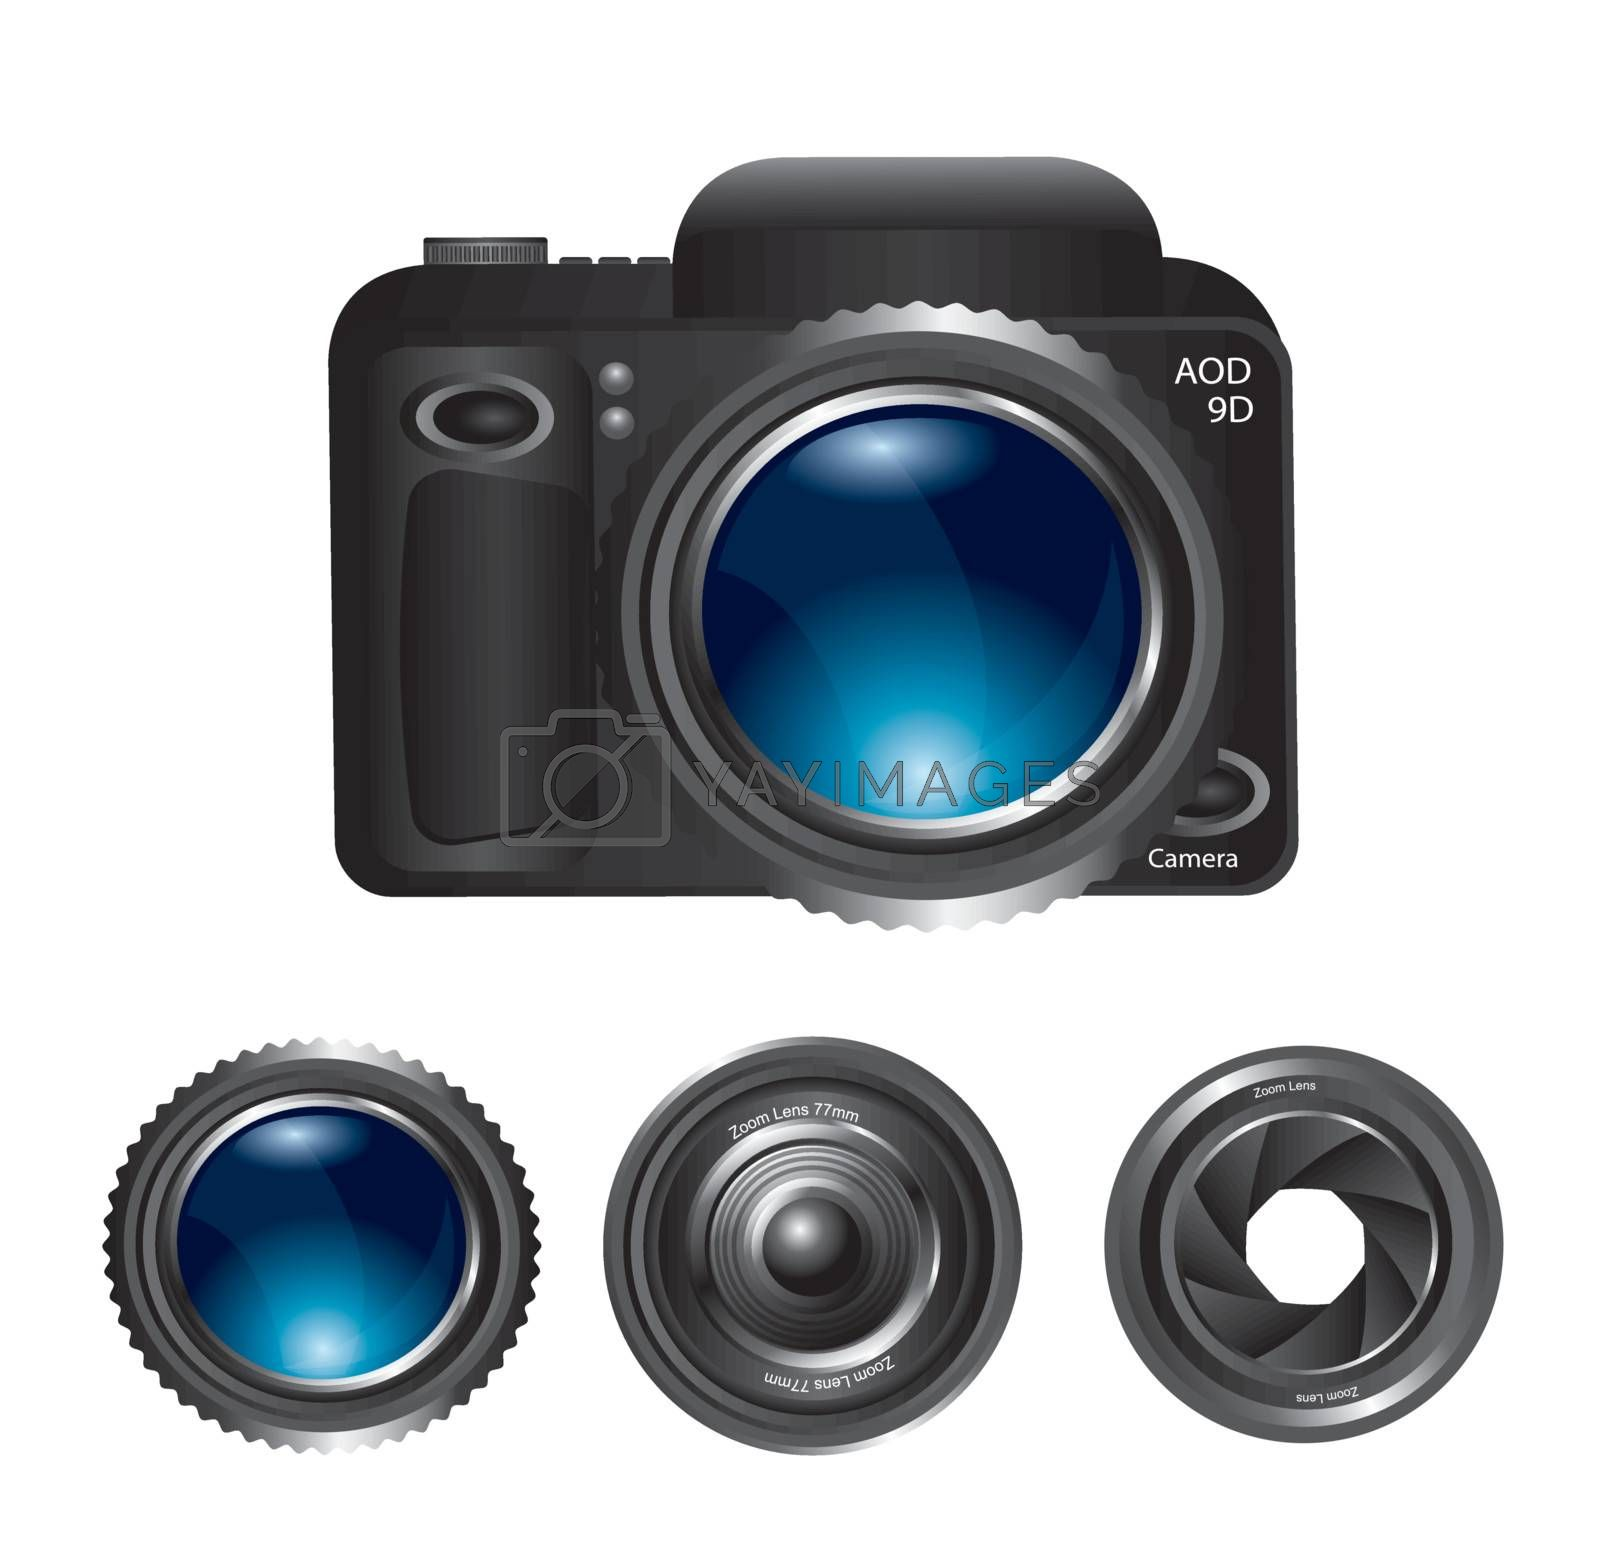 camera lens at different positions over white background